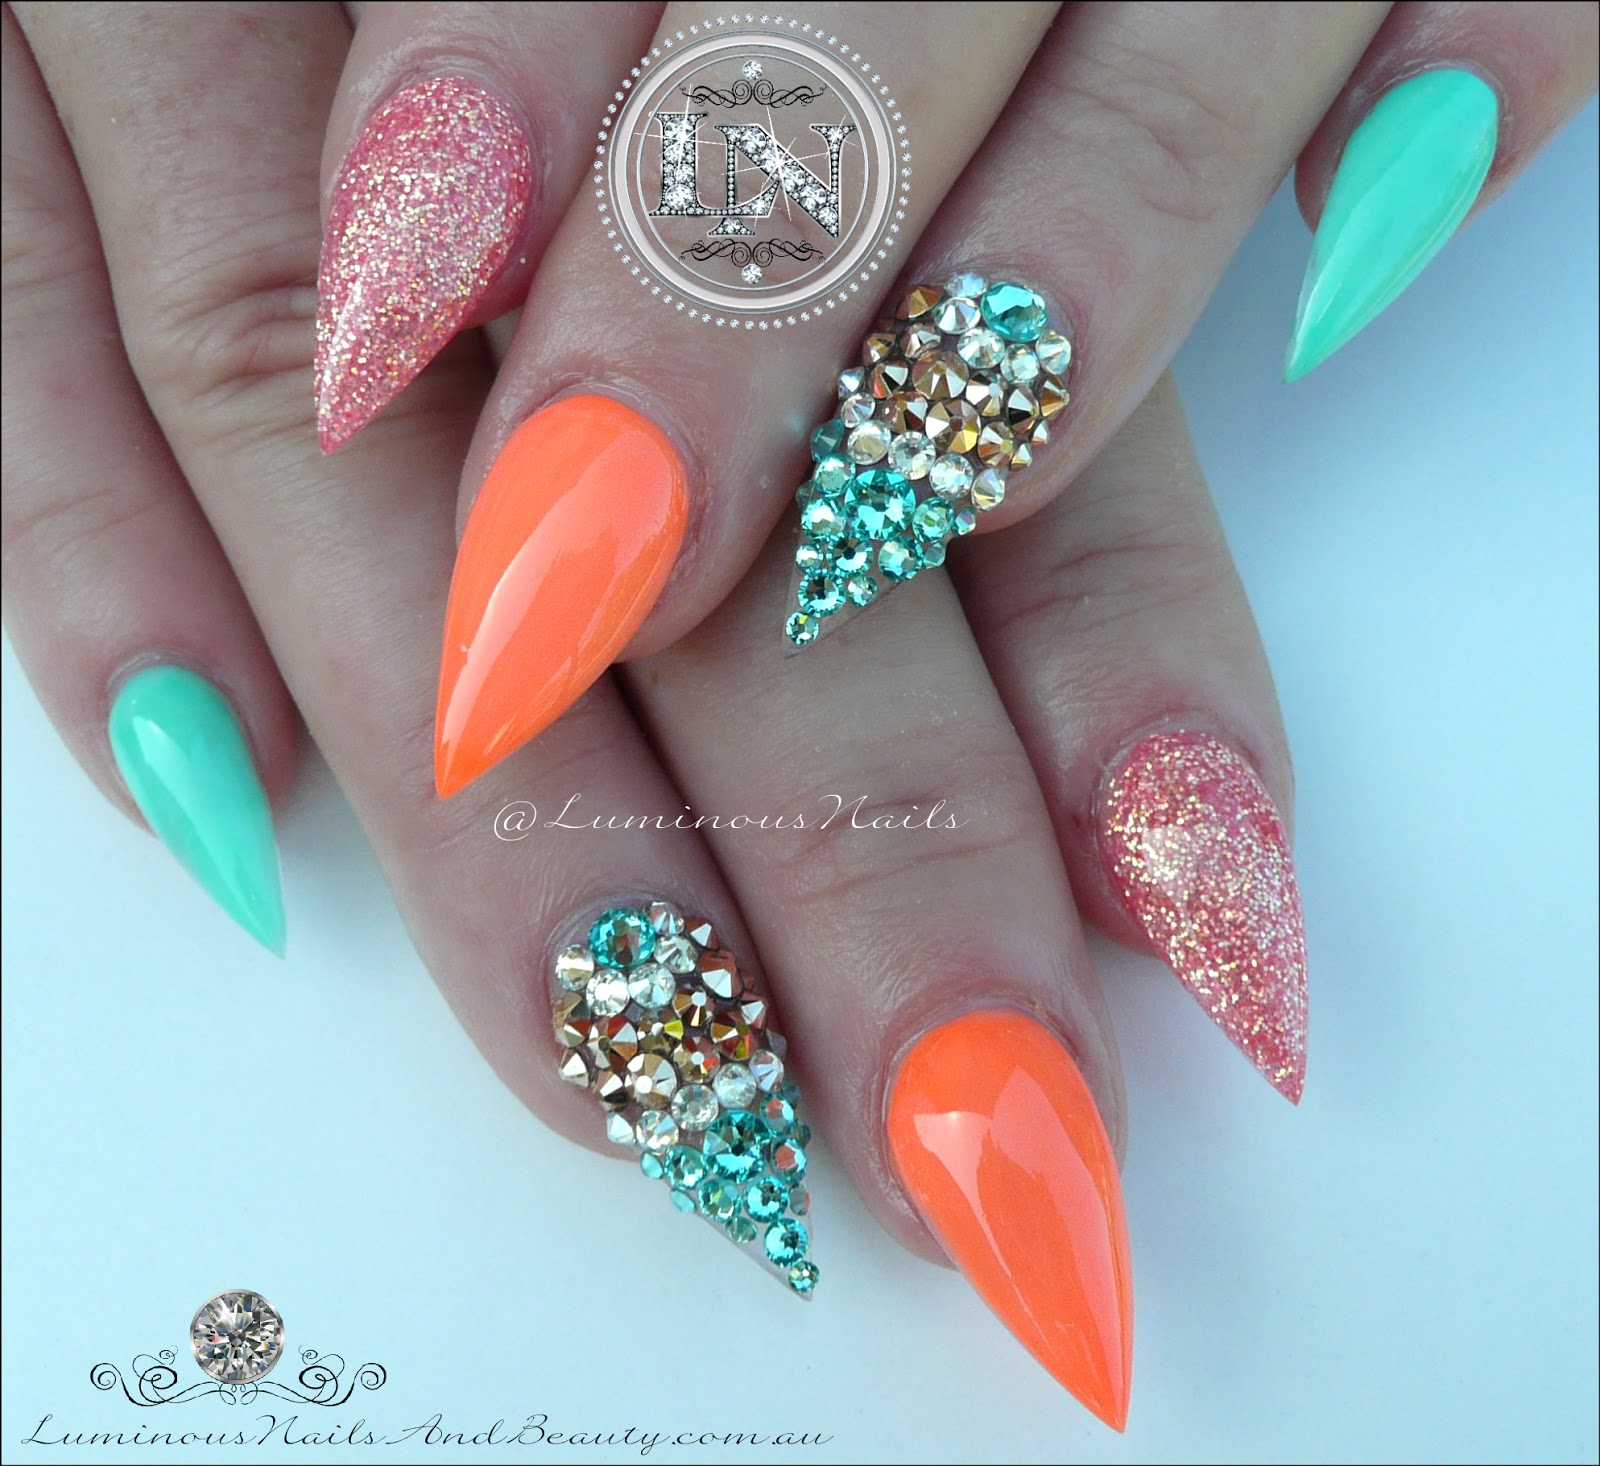 Luminous Nails: Glamorous Nails... Inspired by @malishka702_nails ...